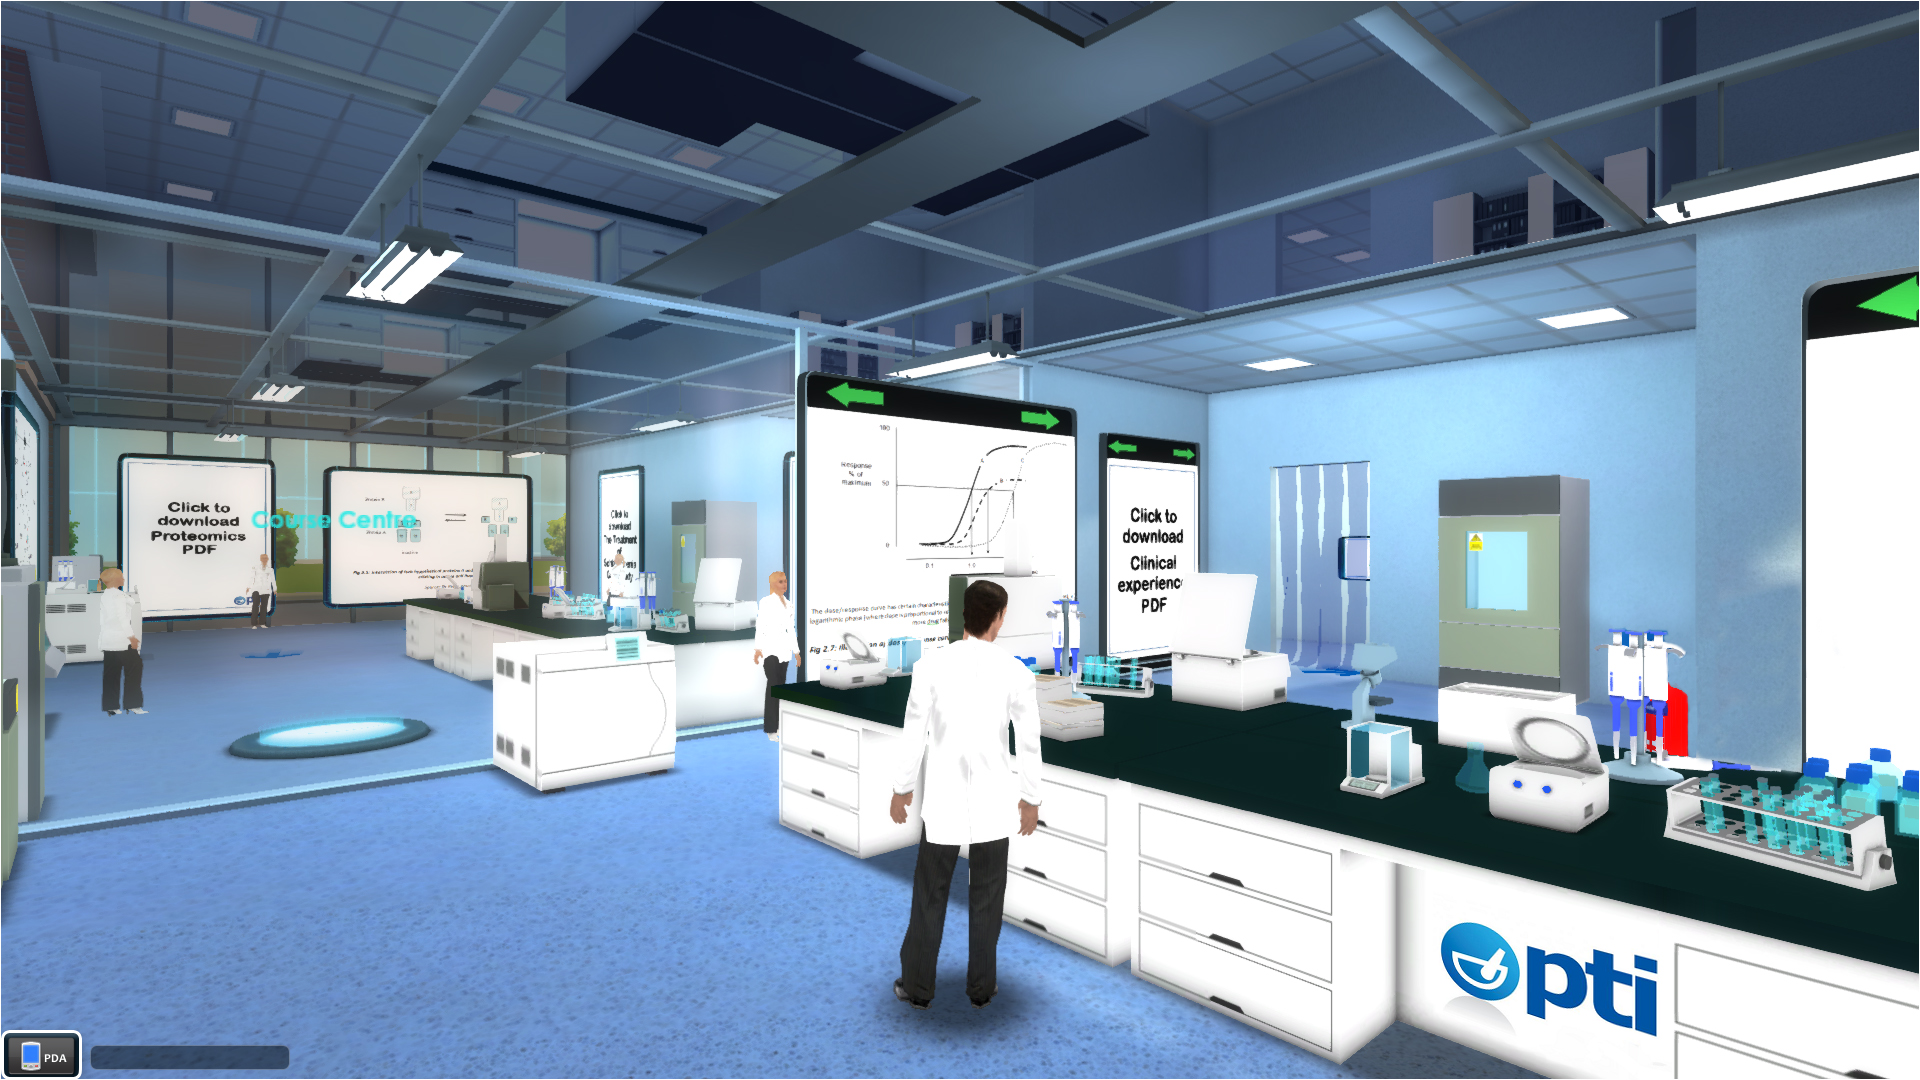 1504PTI 3D Virtual Learning Environment.jpg